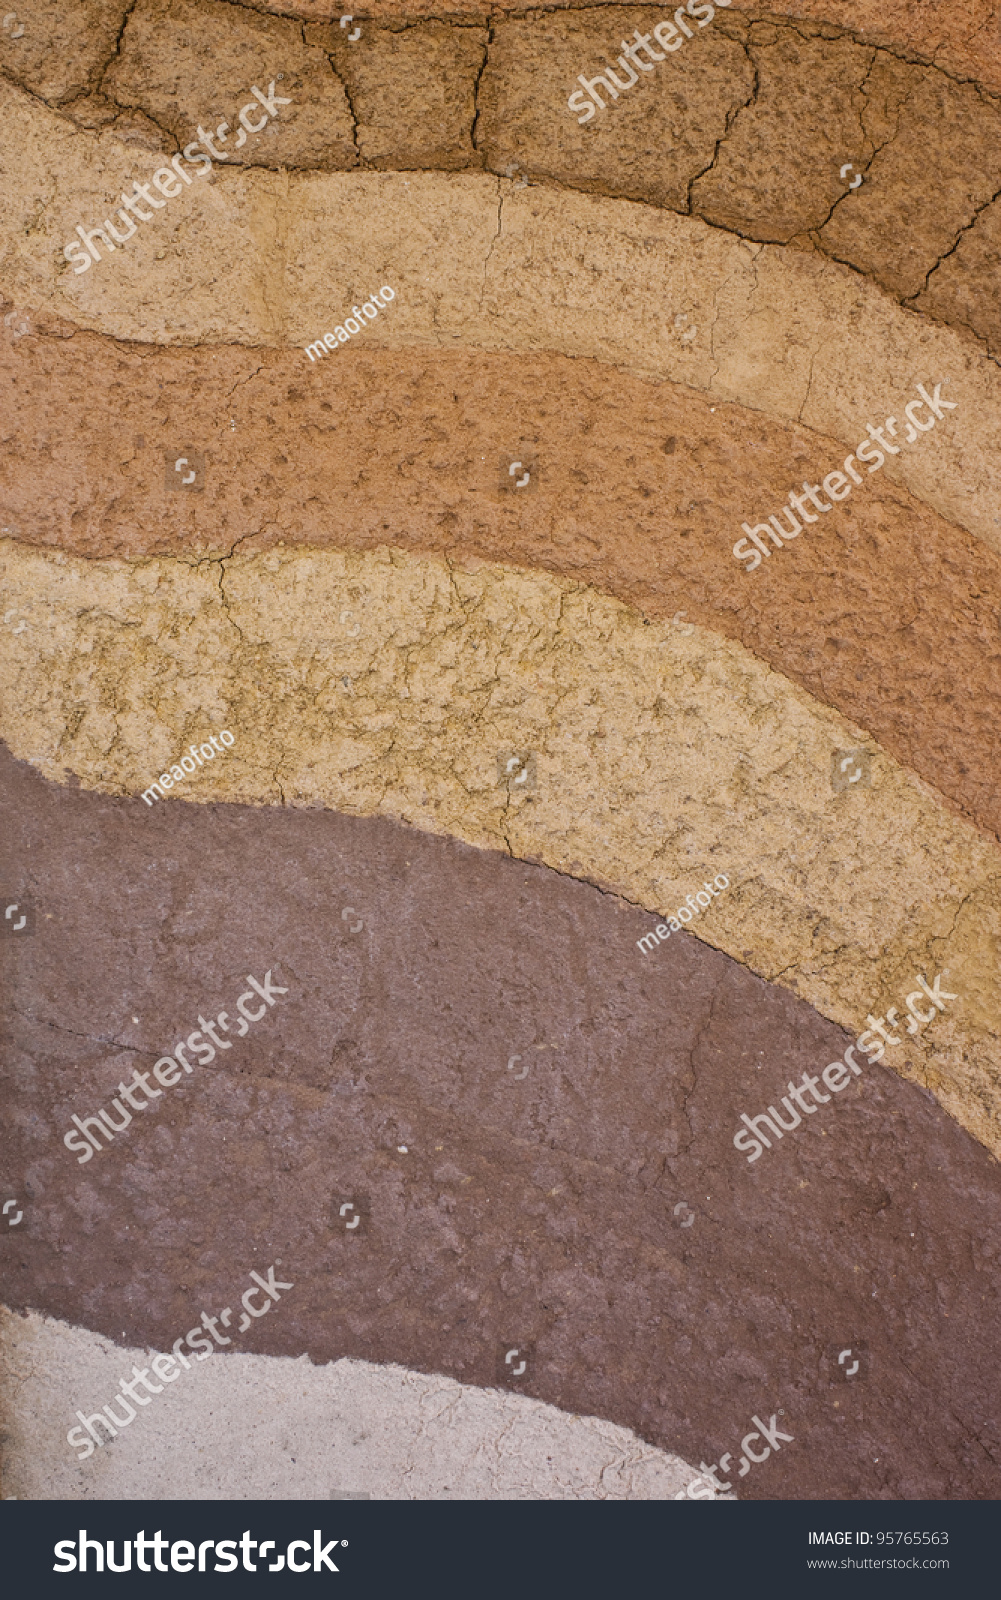 Form And Texture : A form of soil layers its colour and textures stock photo